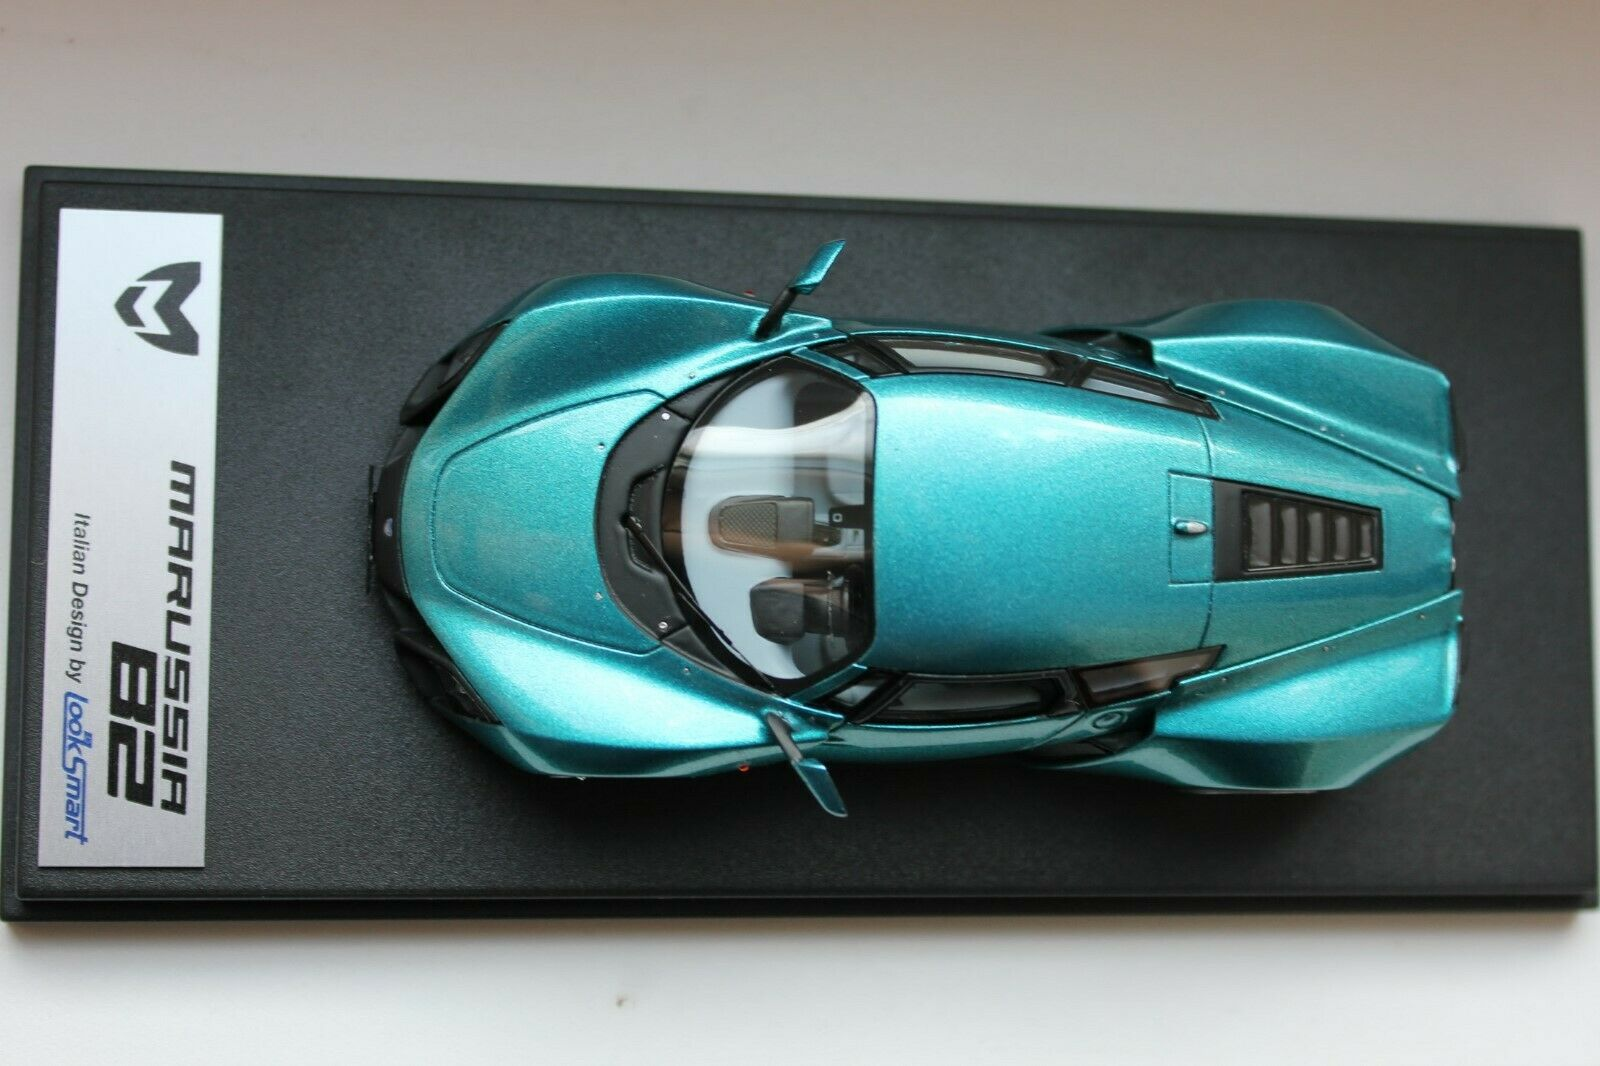 Look Smart LSMA01B 1:43 MARUSSIA B2 2009 LIMITED EDITION 165 PCS GLACIER BLUE ME